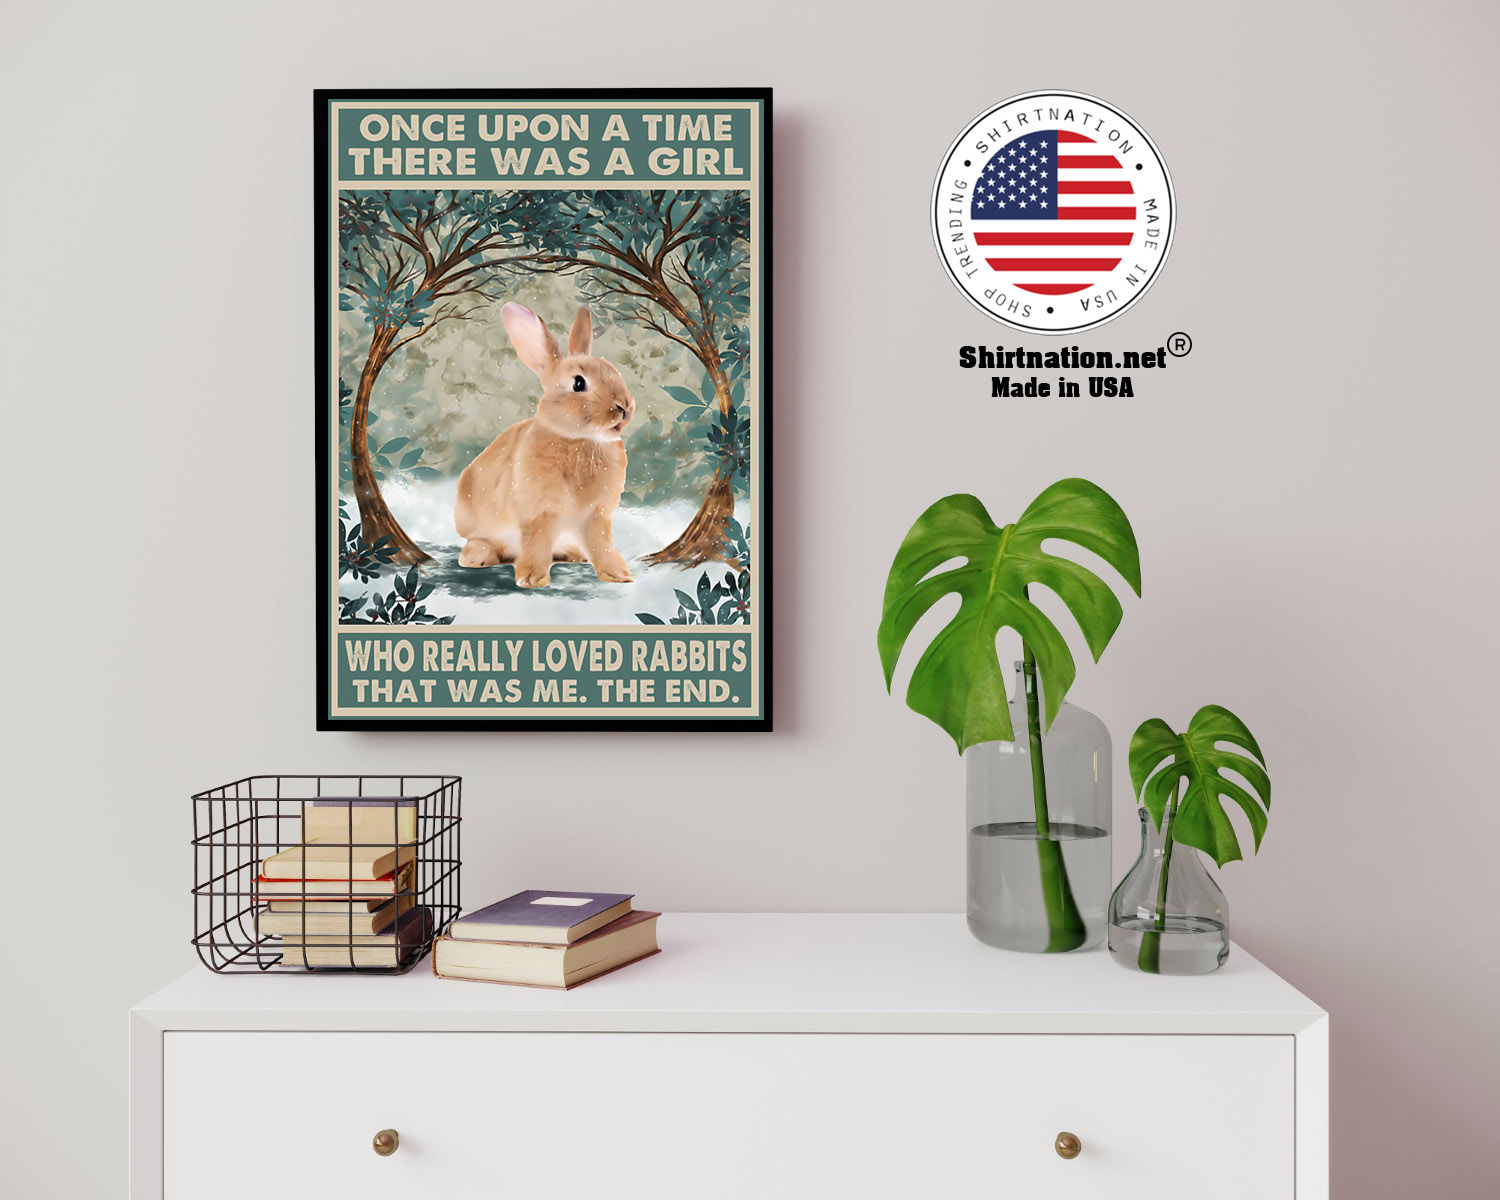 Once upon a time there was a girl who really loved rabbits poster 8